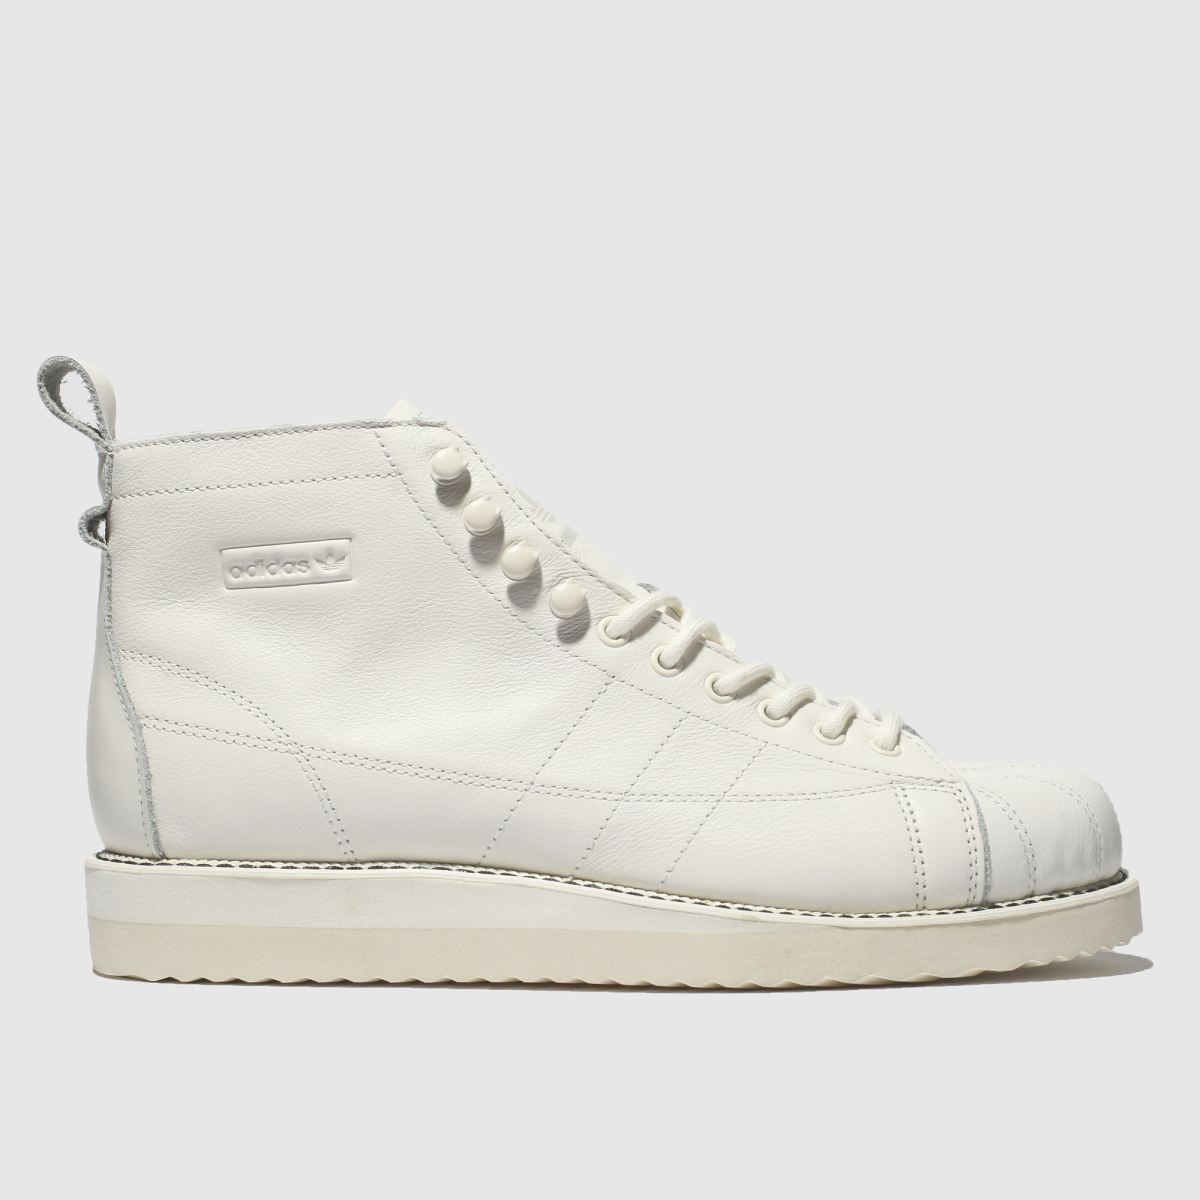 Adidas White Superstar Boot Trainers